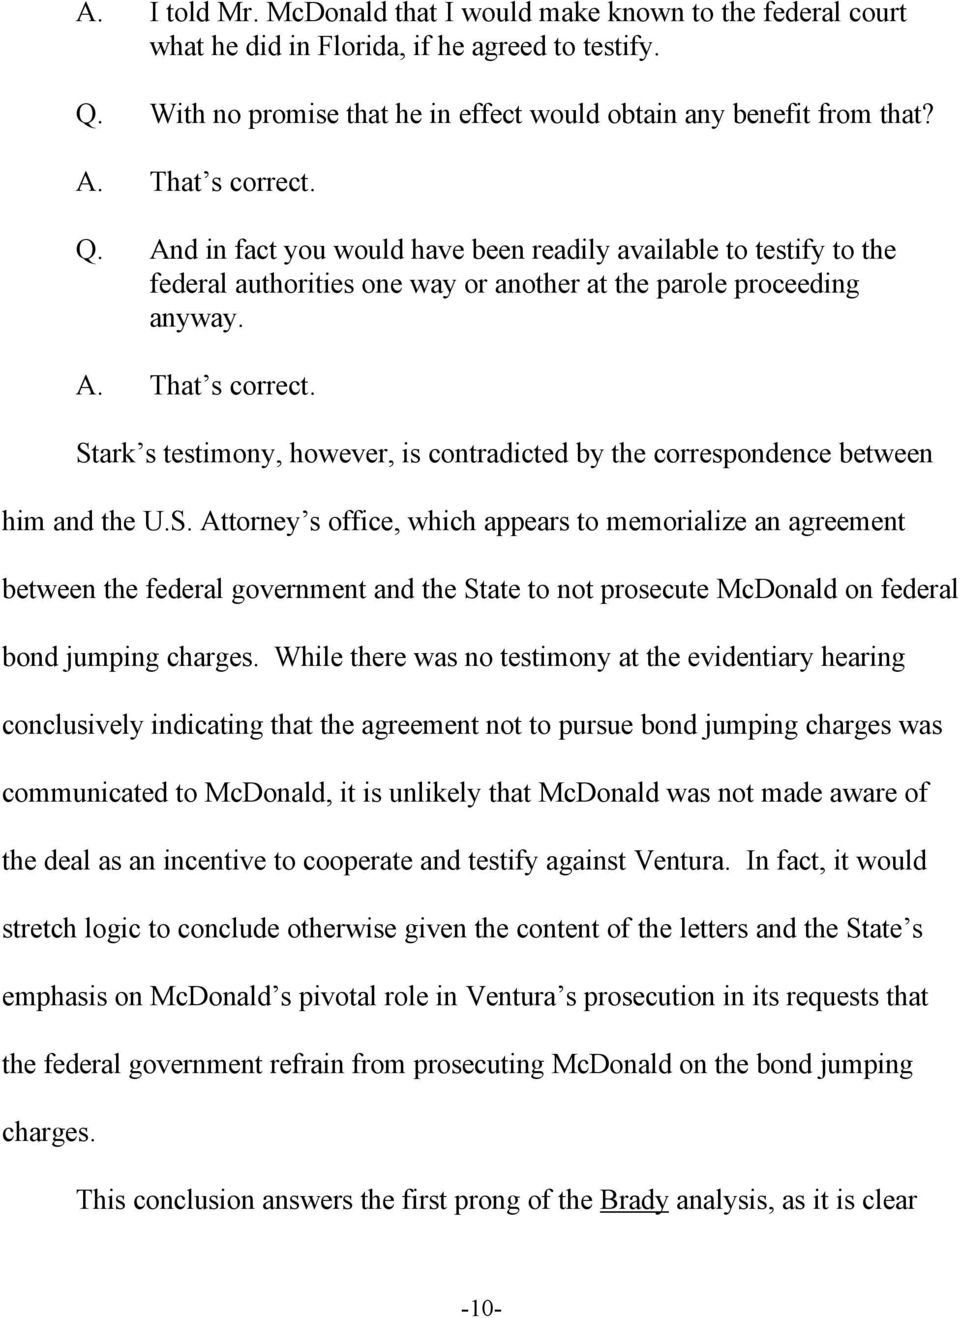 Stark s testimony, however, is contradicted by the correspondence between him and the U.S. Attorney s office, which appears to memorialize an agreement between the federal government and the State to not prosecute McDonald on federal bond jumping charges.